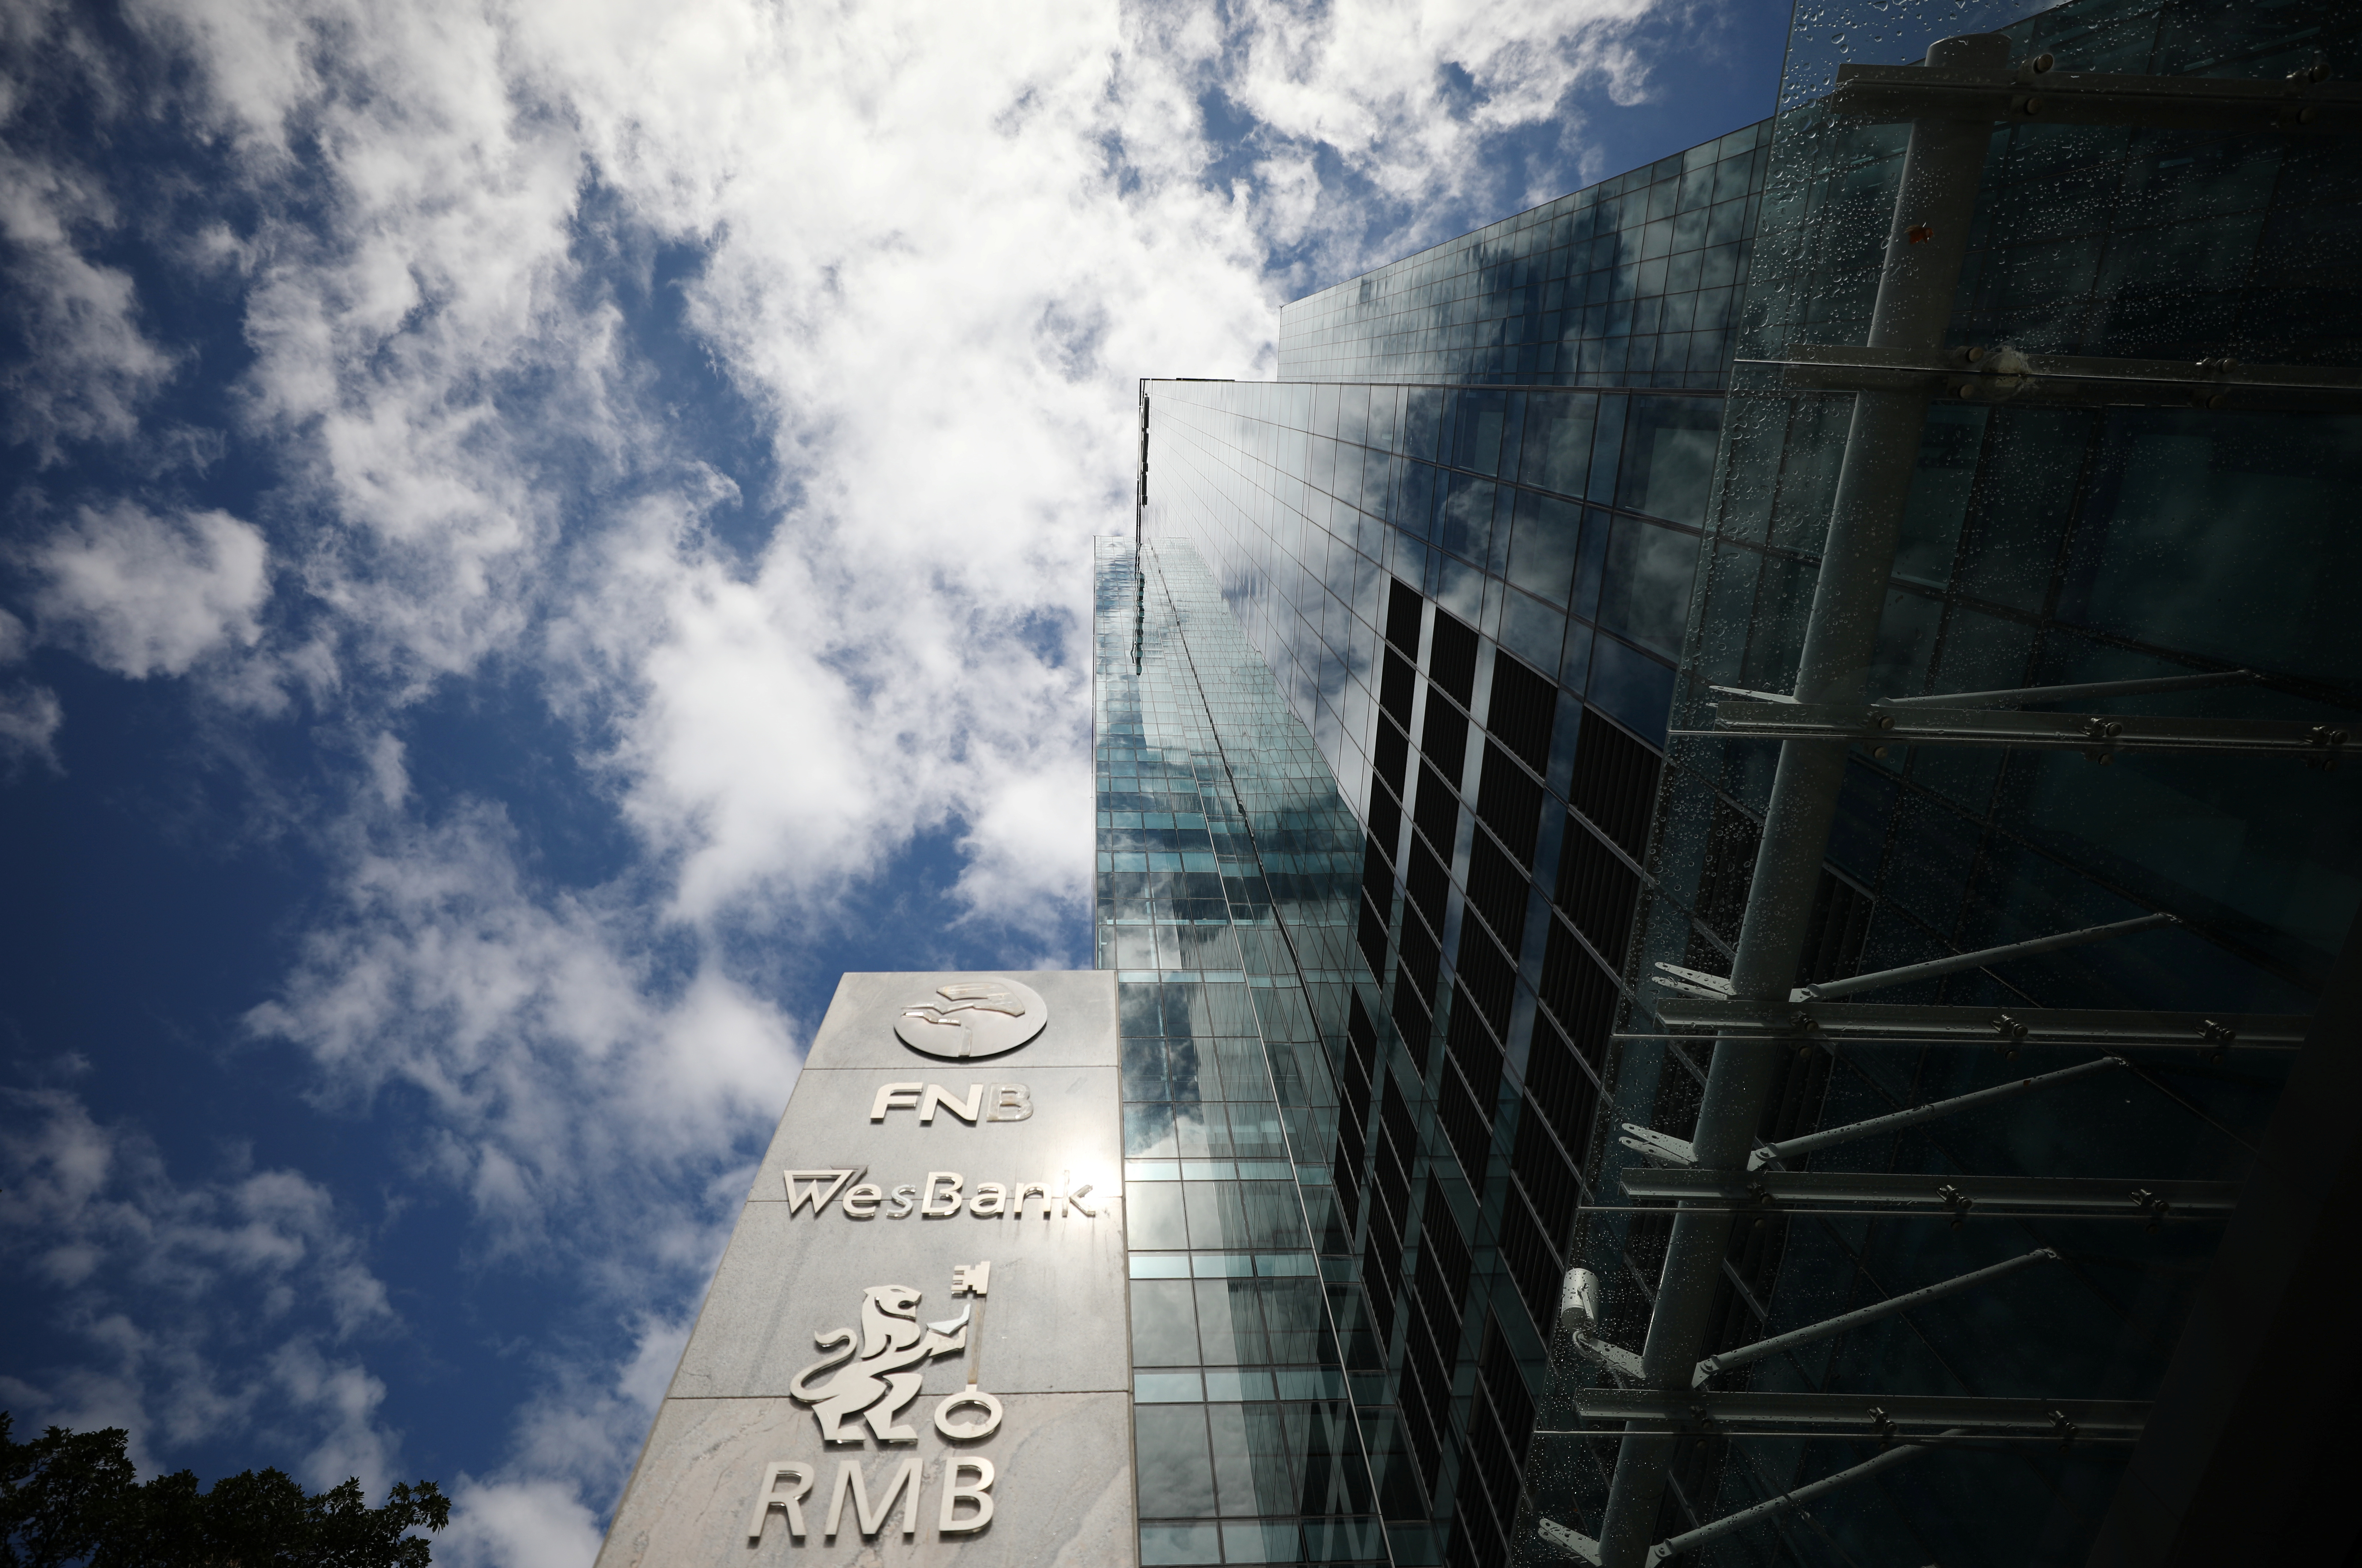 The logos of companies Rand Merchant Bank, FNB, and Wesbank are seen outside the FirstRand offices in Cape Town, South Africa, March 11, 2019. Picture taken March 11, 2019. REUTERS/Mike Hutchings